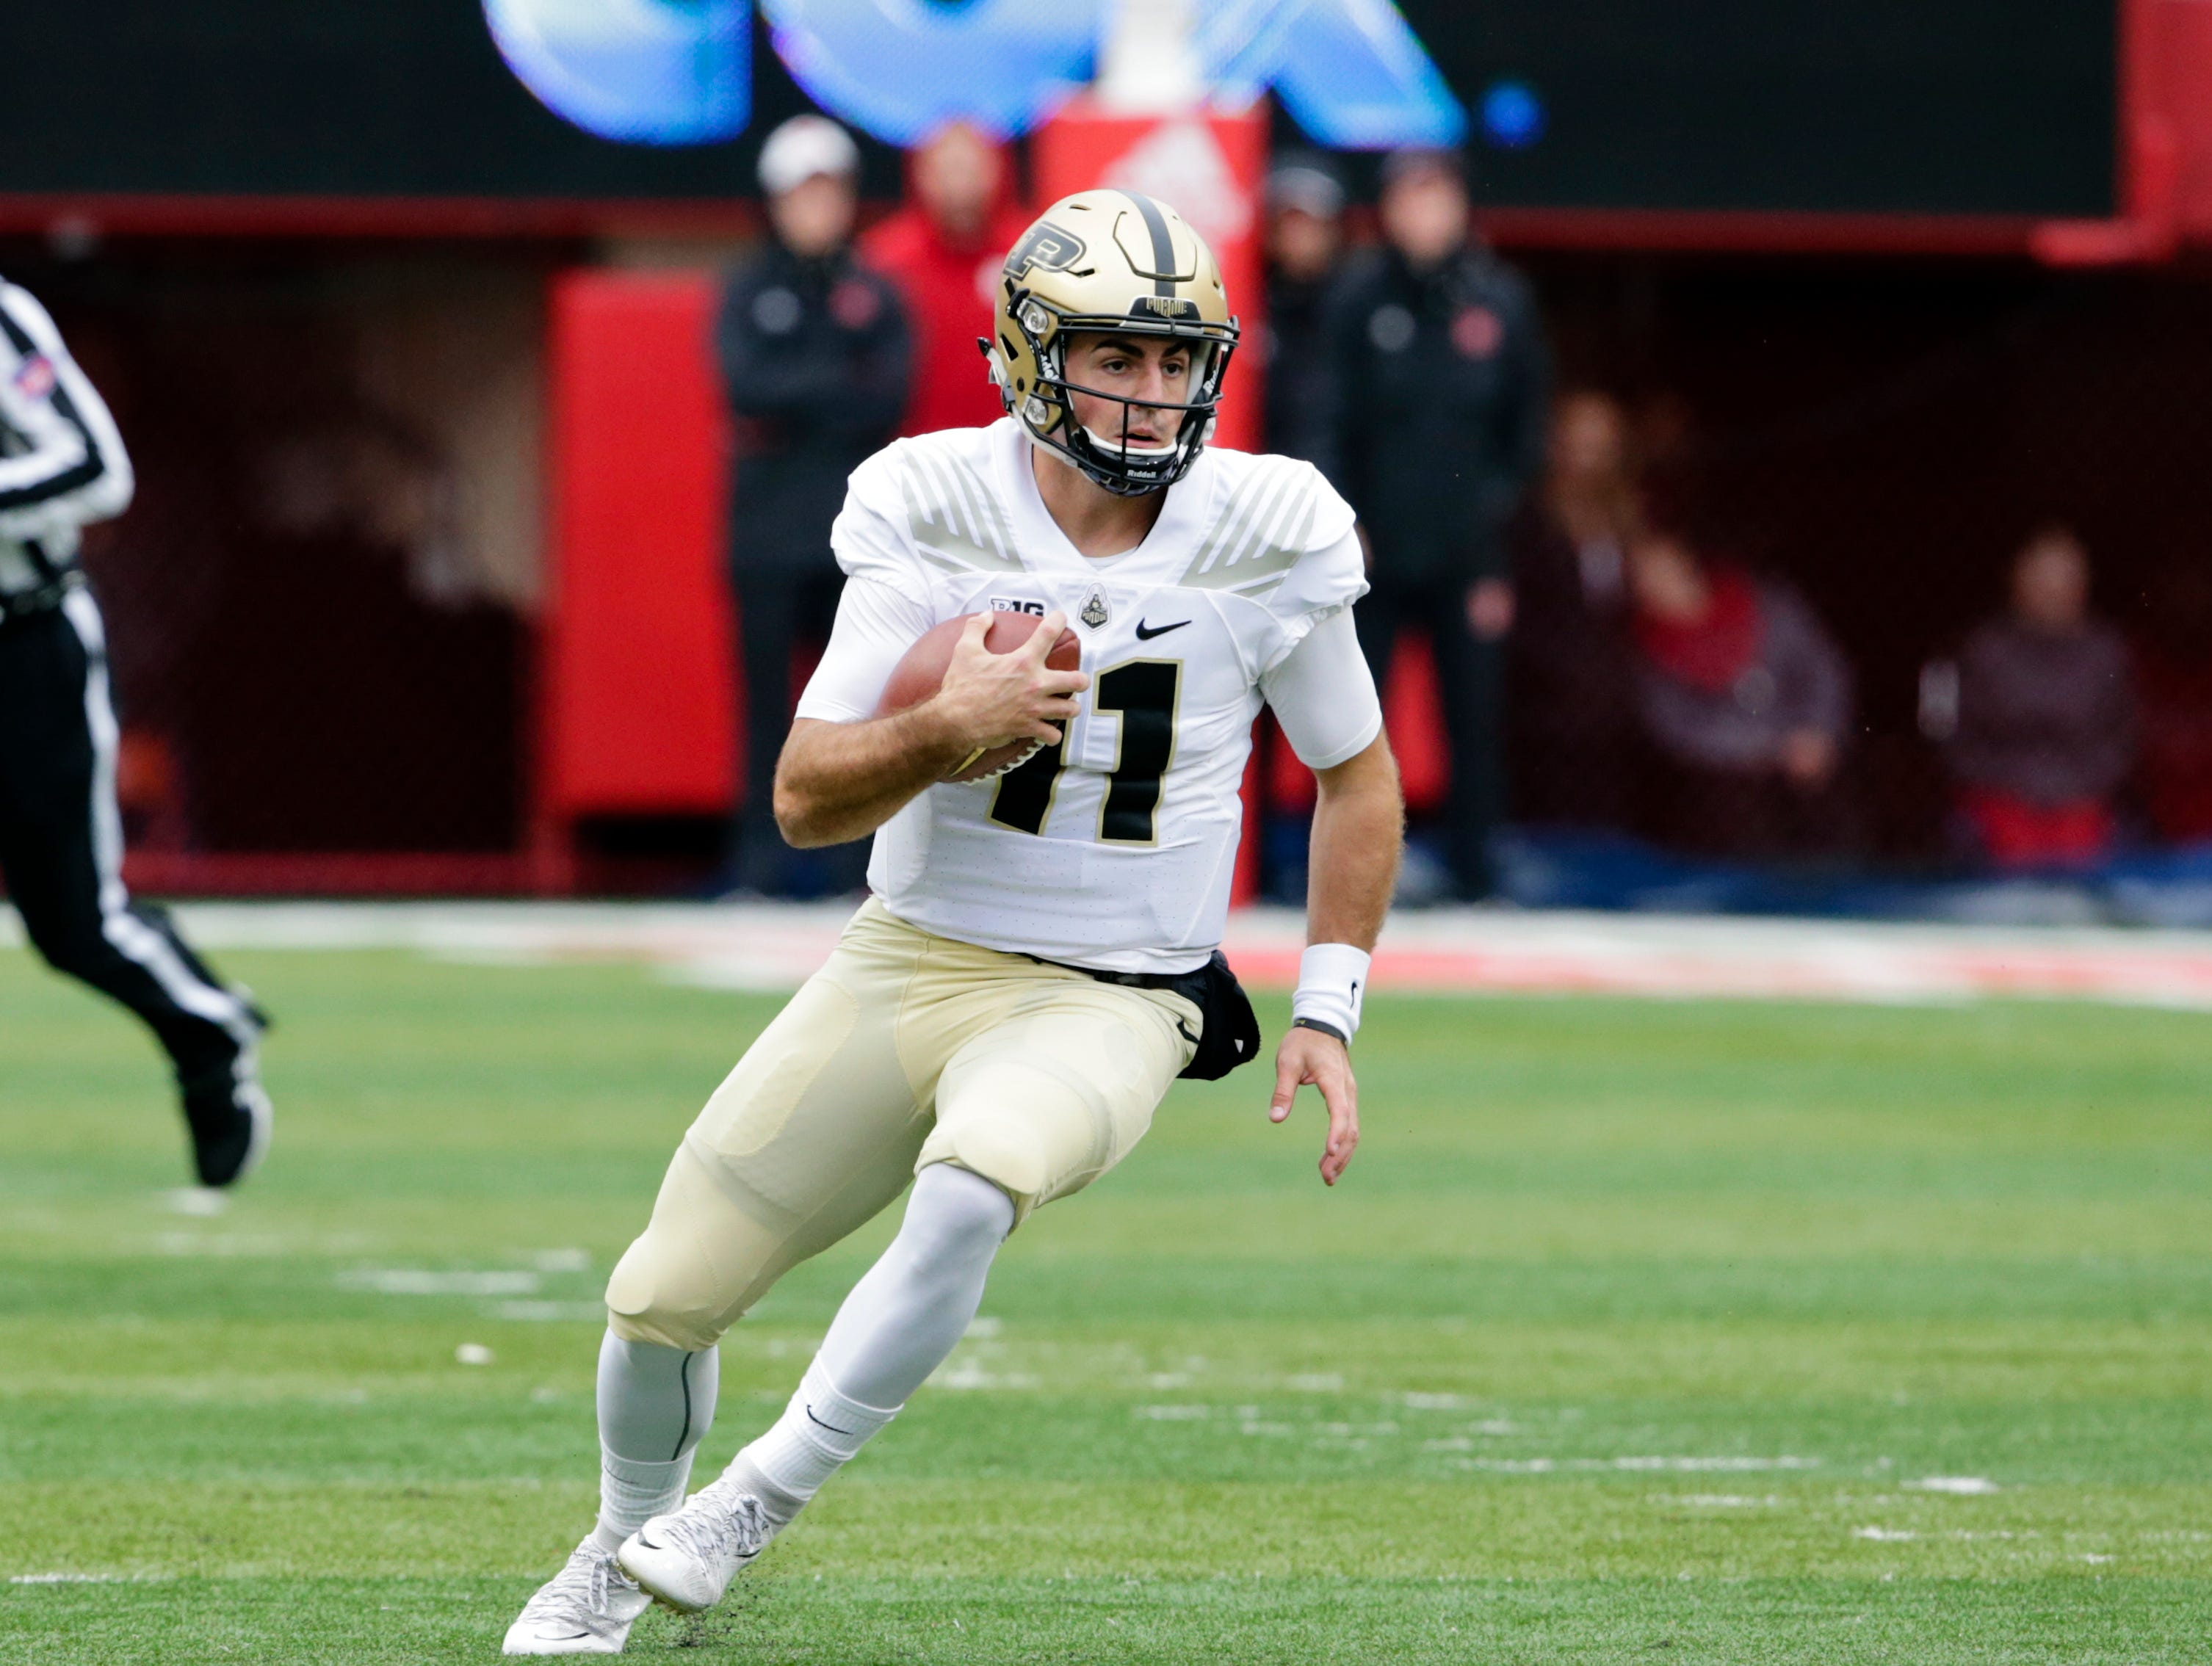 Purdue quarterback David Blough (11) runs with the ball during the first half of an NCAA college football game against Nebraska in Lincoln, Neb., Saturday, Sept. 29, 2018. (AP Photo/Nati Harnik)